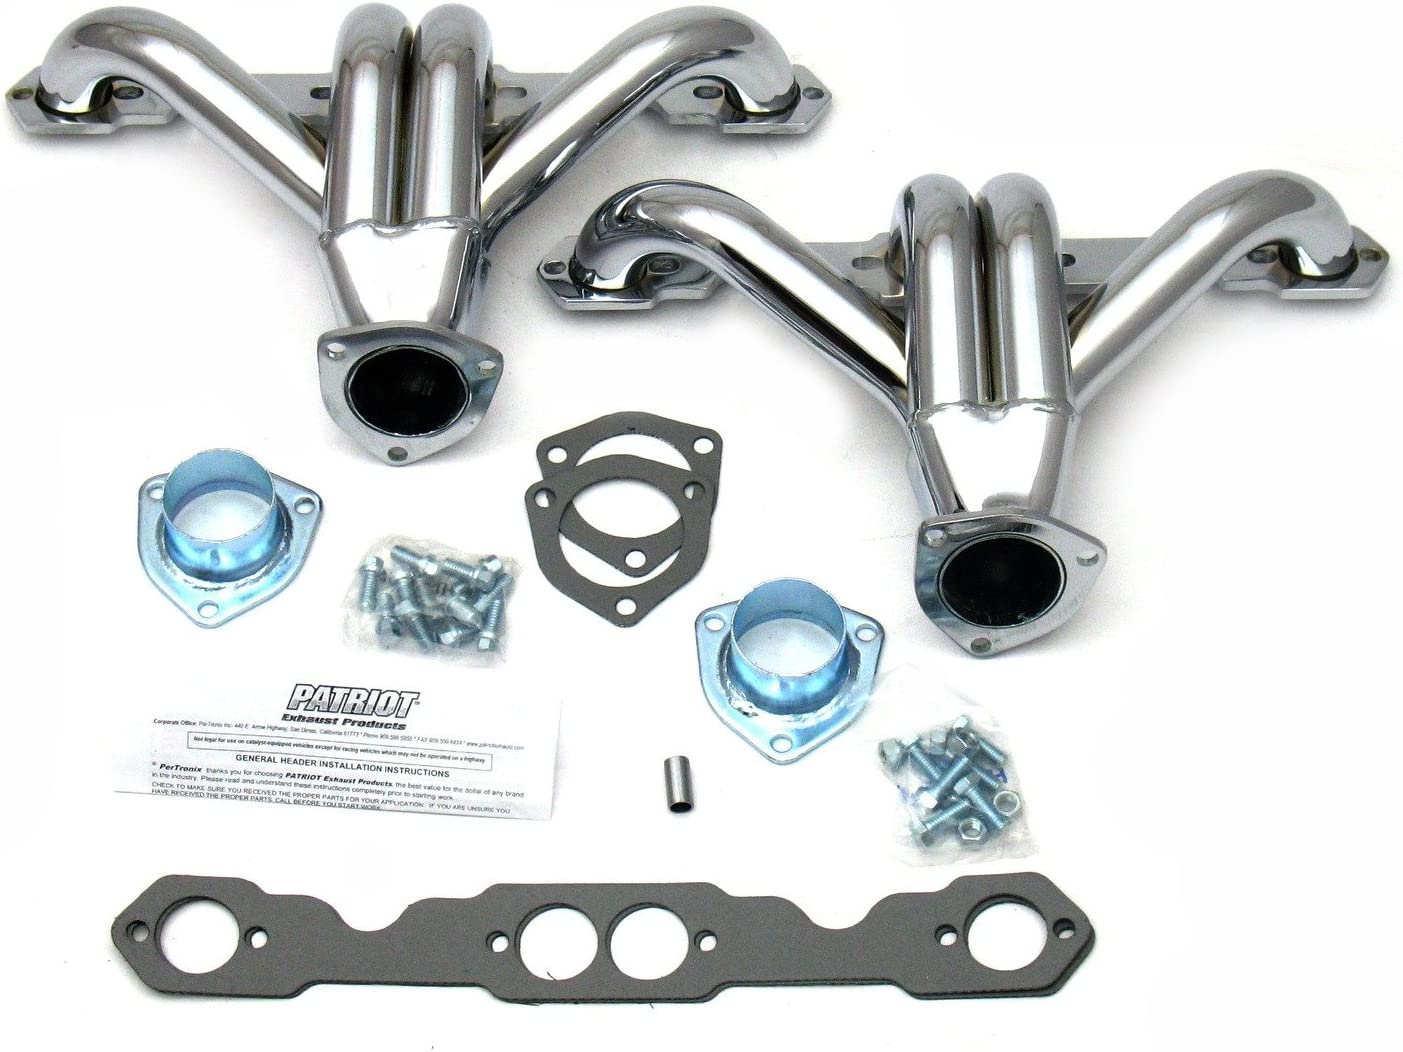 Patriot Exhaust H8028 1-5//8 Tight Tuck Exhaust Header for Small Block Chevy